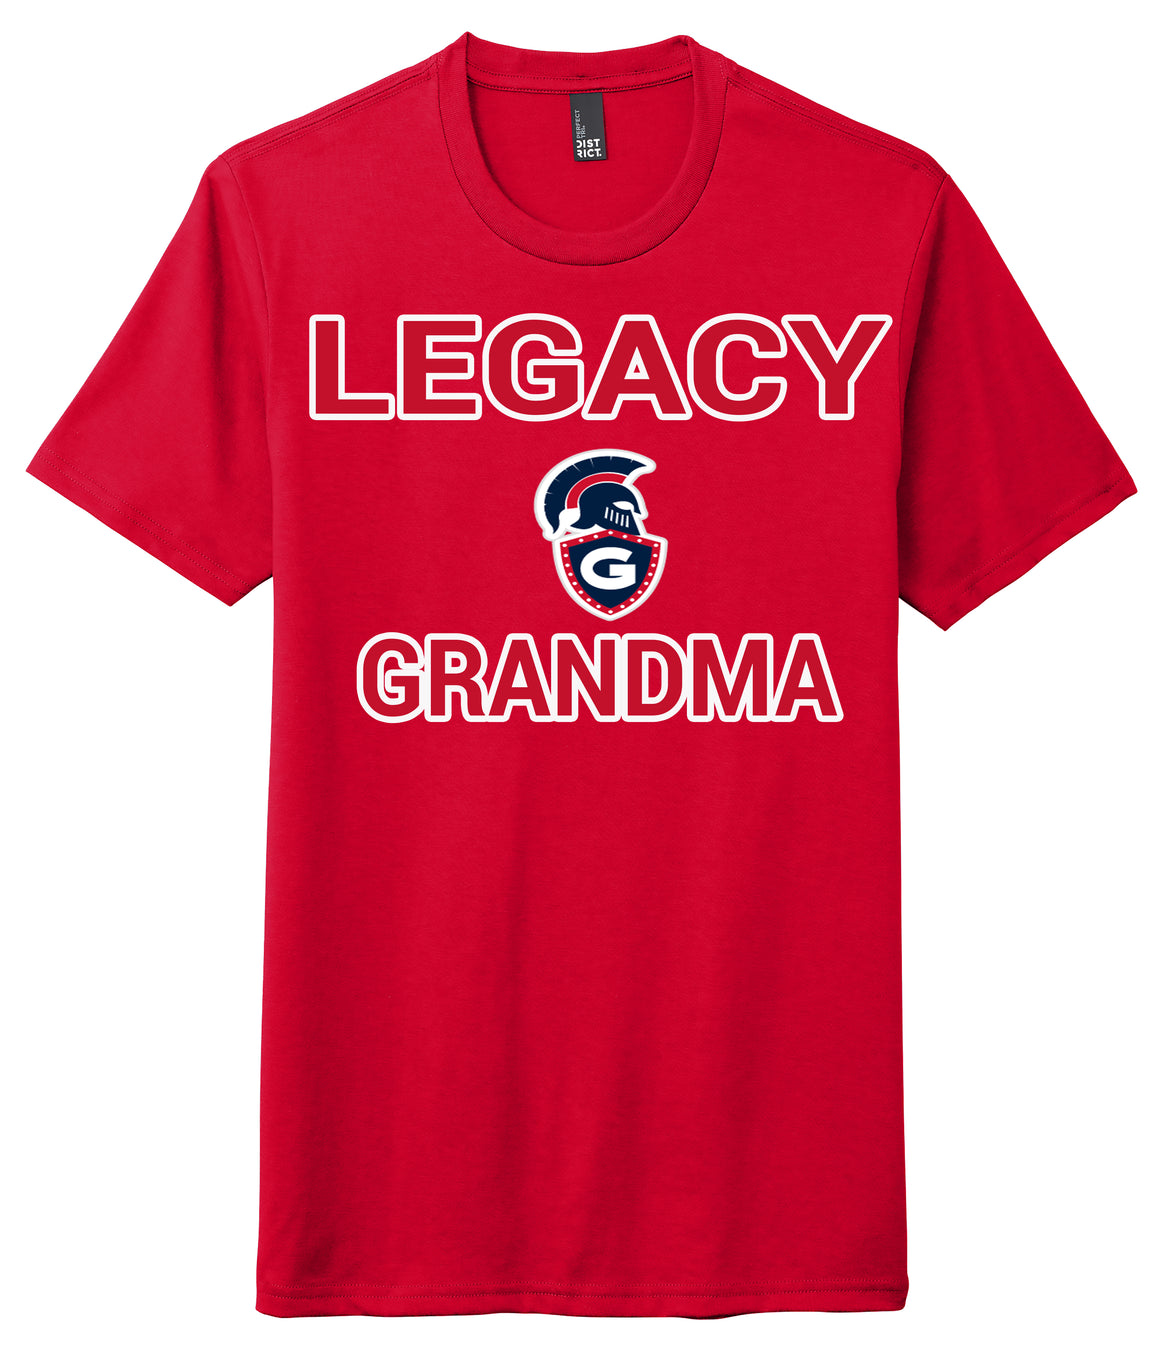 Legacy Traditional School Glendale - Grandma Shirt